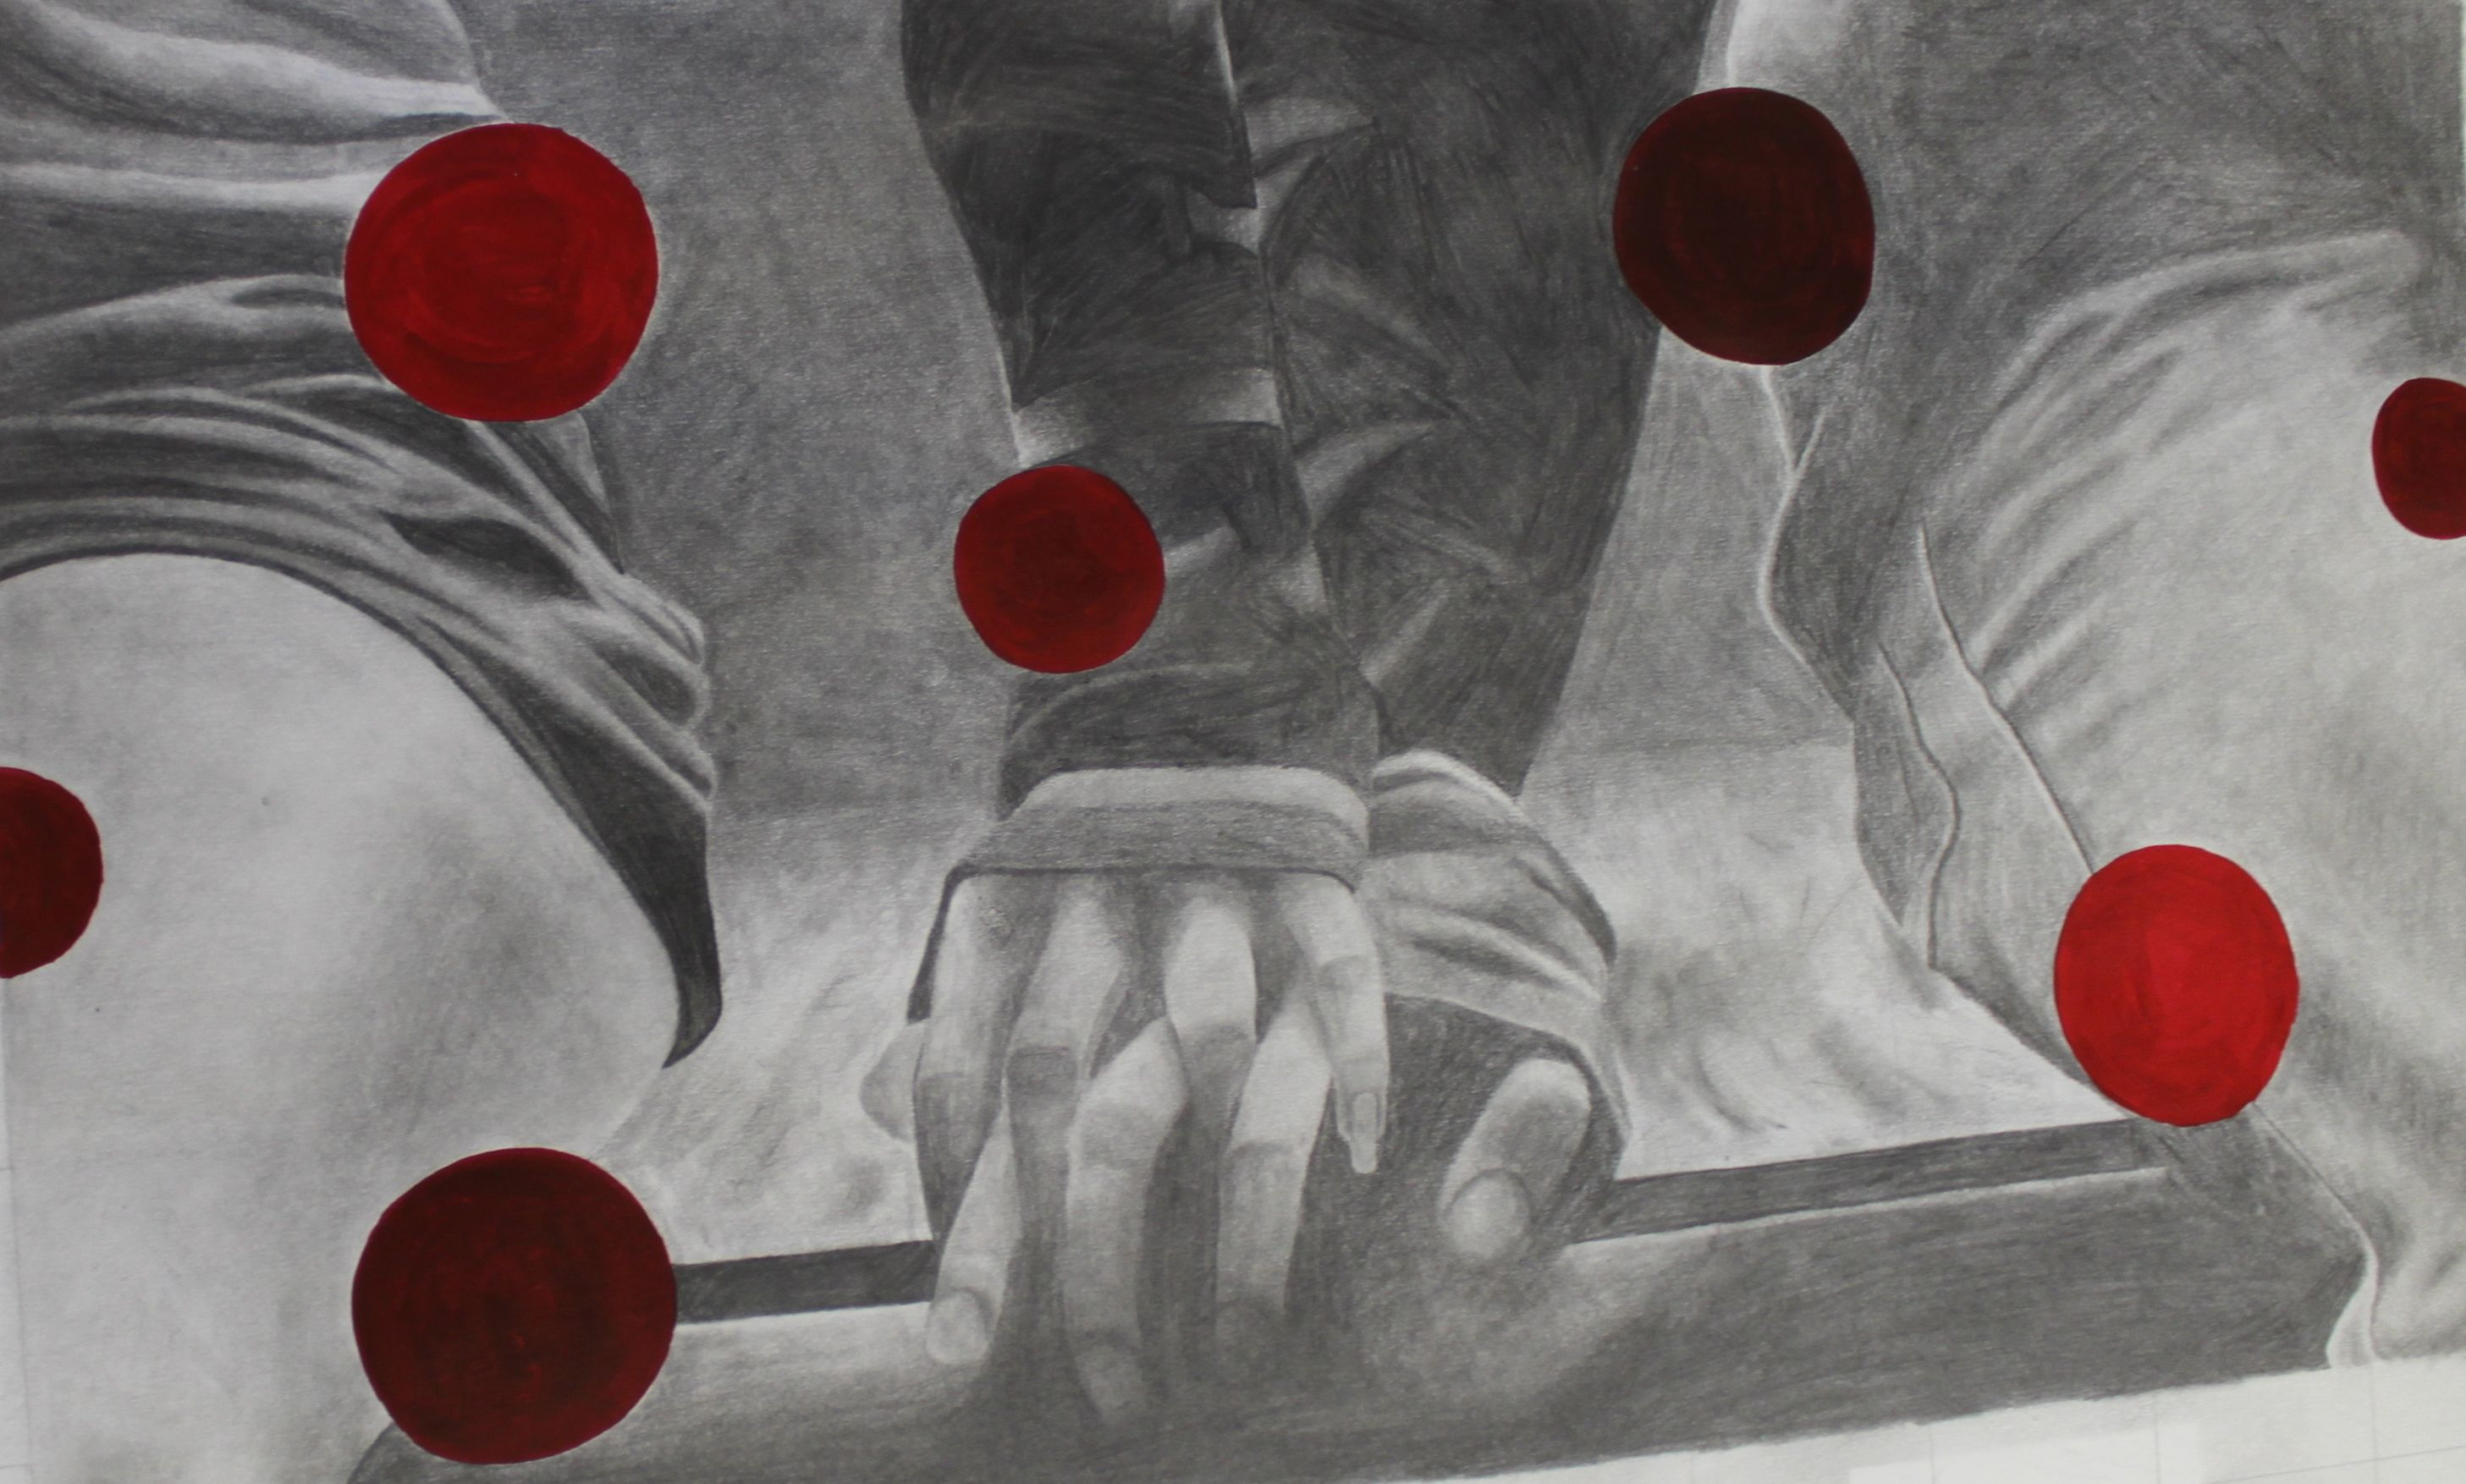 Black and white pencil drawing of two people holding hands, covered with metallic red dots